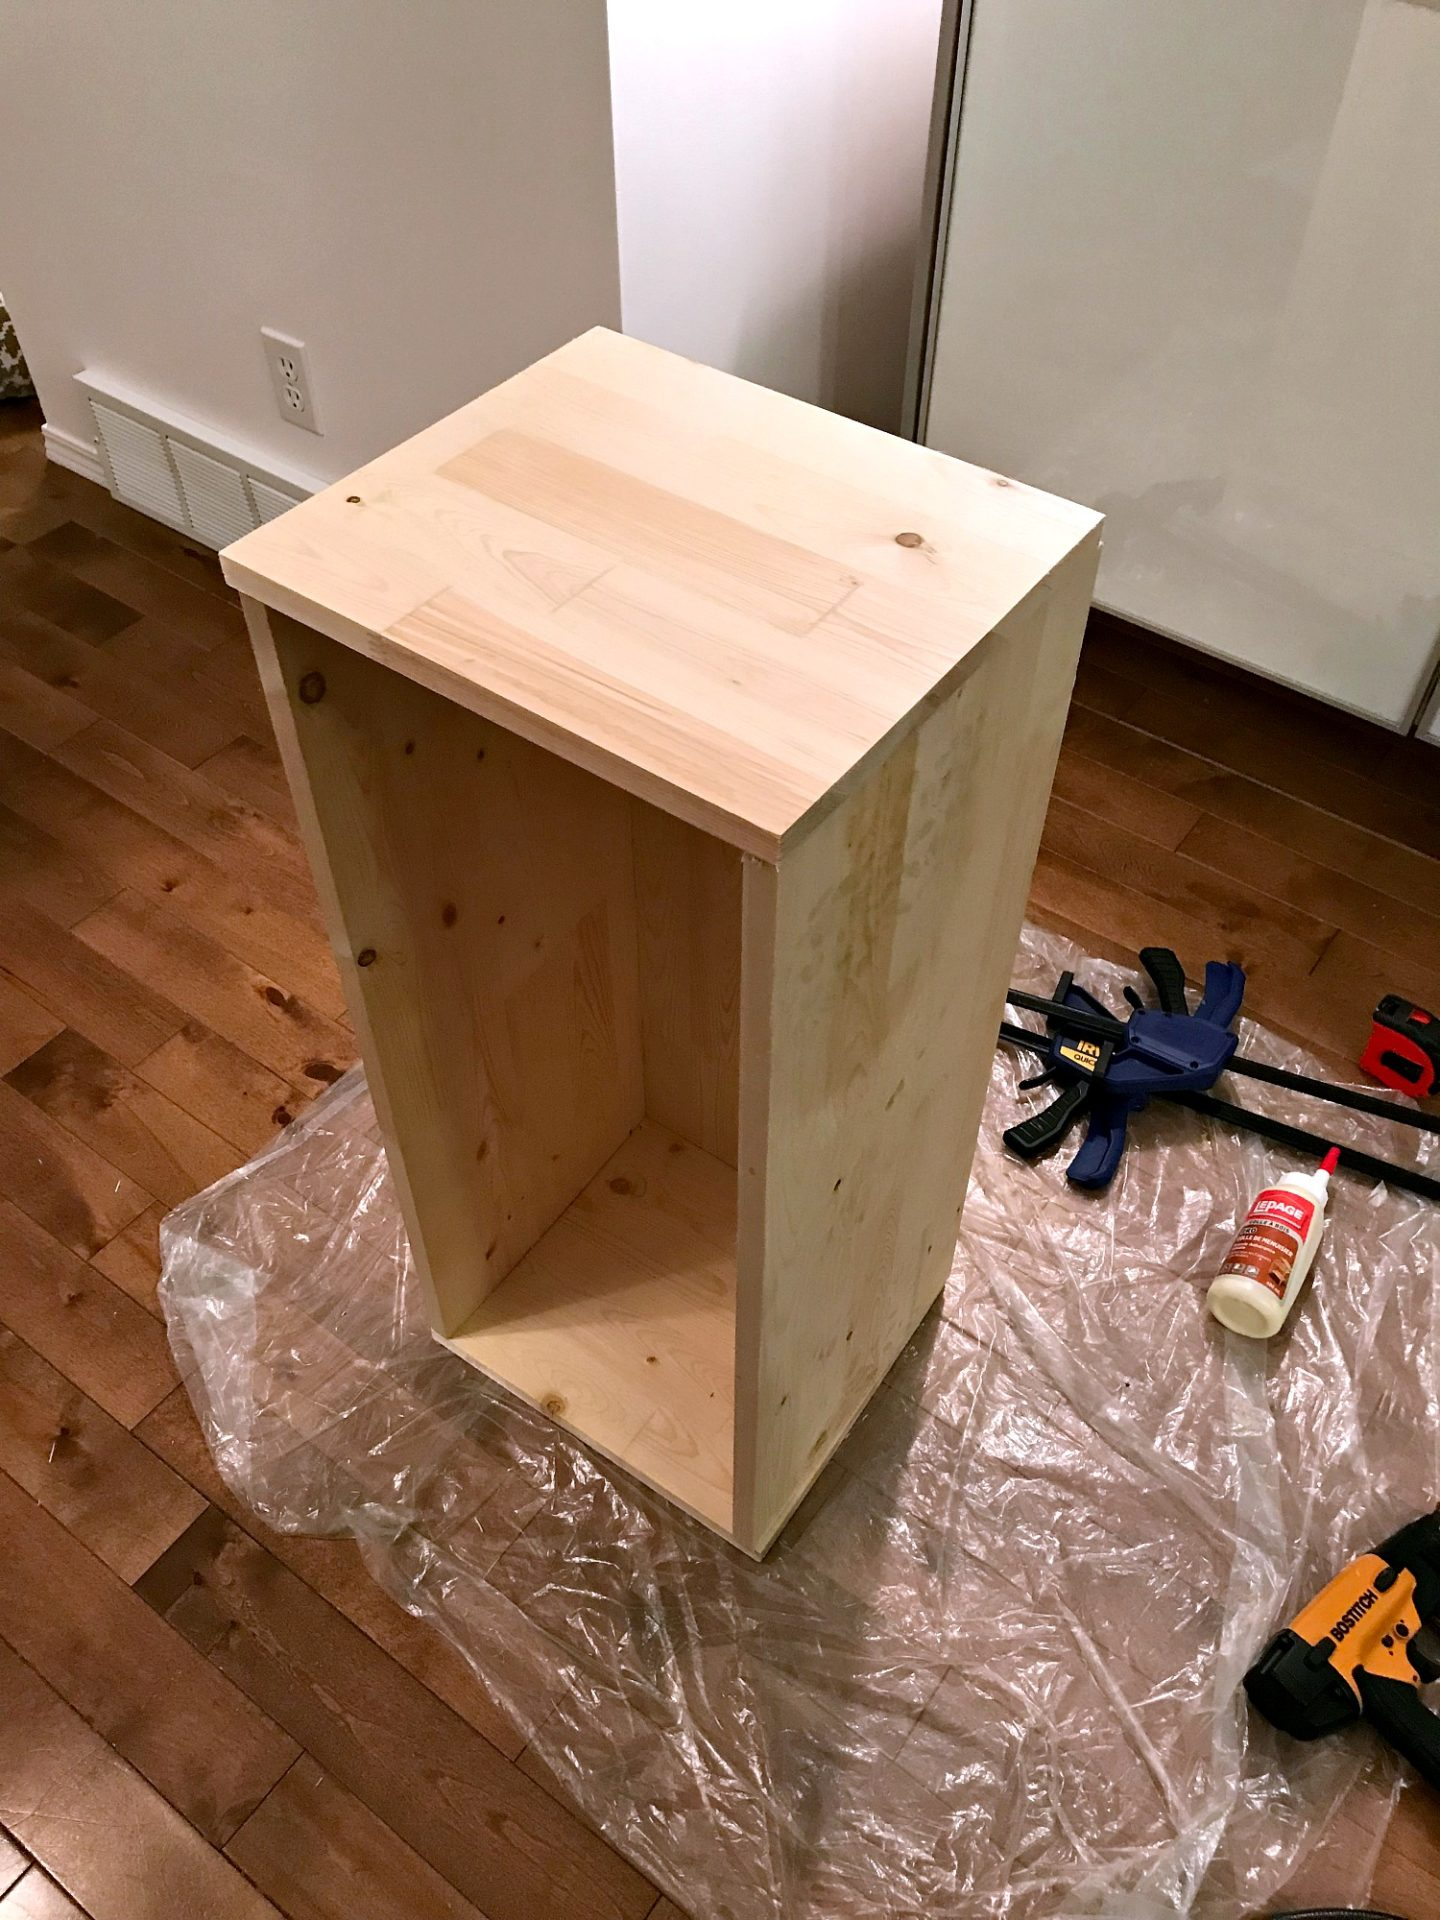 How to Build Wall Cubbies   Fresh Take on Kitchen Open Shelving. Learn How to Build Wall Cubbies and Create Easy DIY Storage Anywhere! Great for Books, Kid's Rooms, or Kitchen Organization. Love this wall cubbies storage idea!